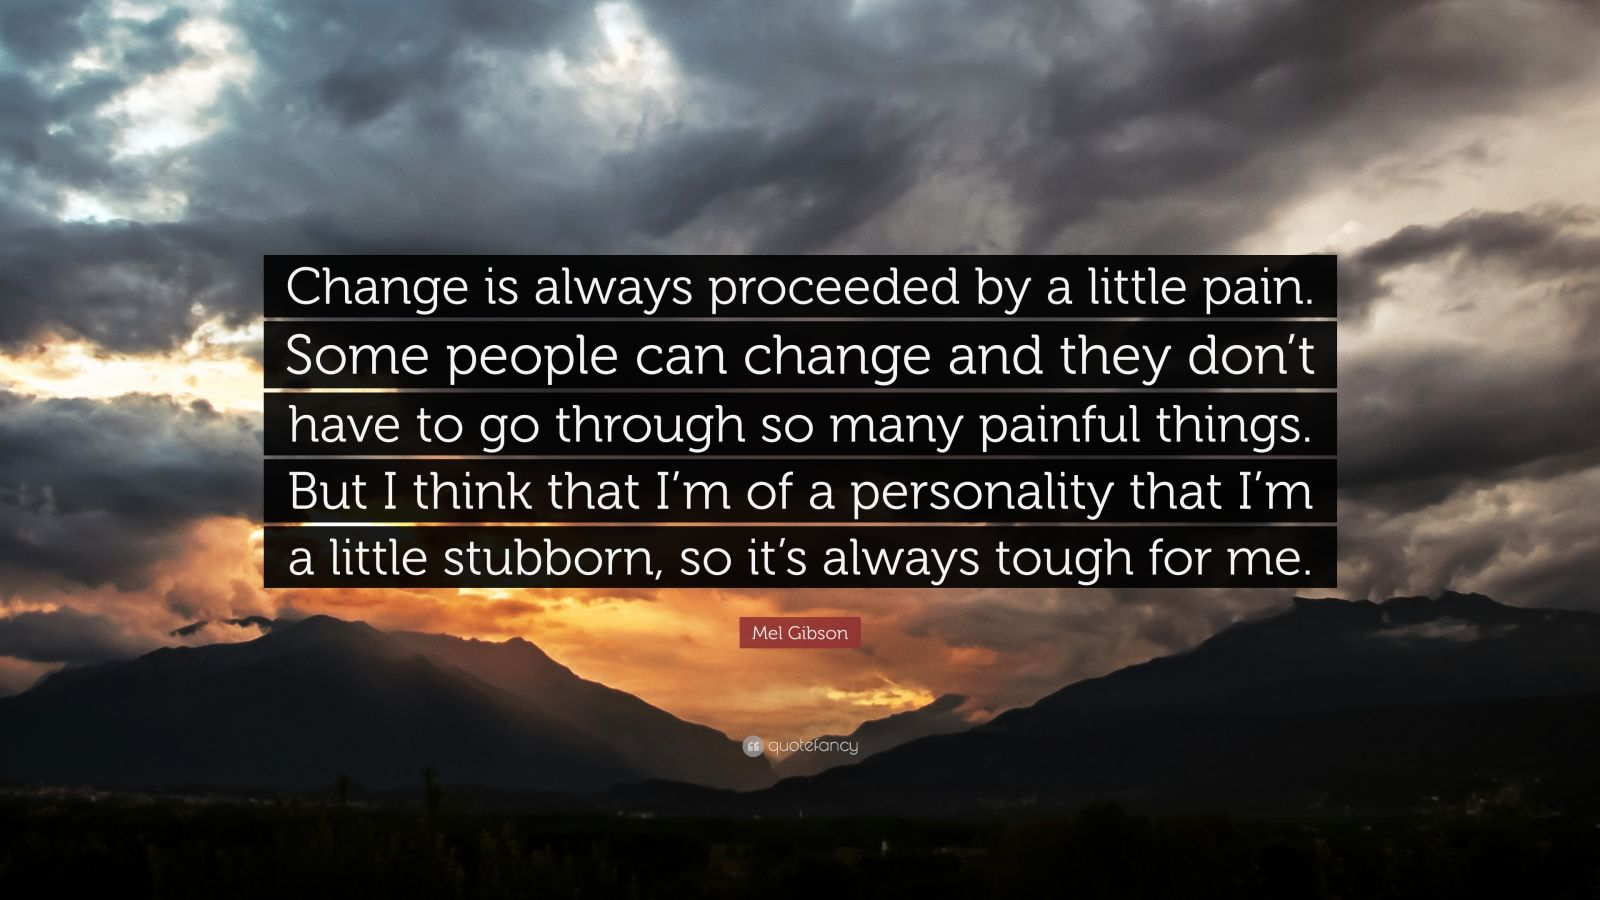 """Mel Gibson Quote: """"Change is always proceeded by a little pain. Some people can change and they don't have to go through so many painful things. But I think that I'm of a personality that I'm a little stubborn, so it's always tough for me."""""""